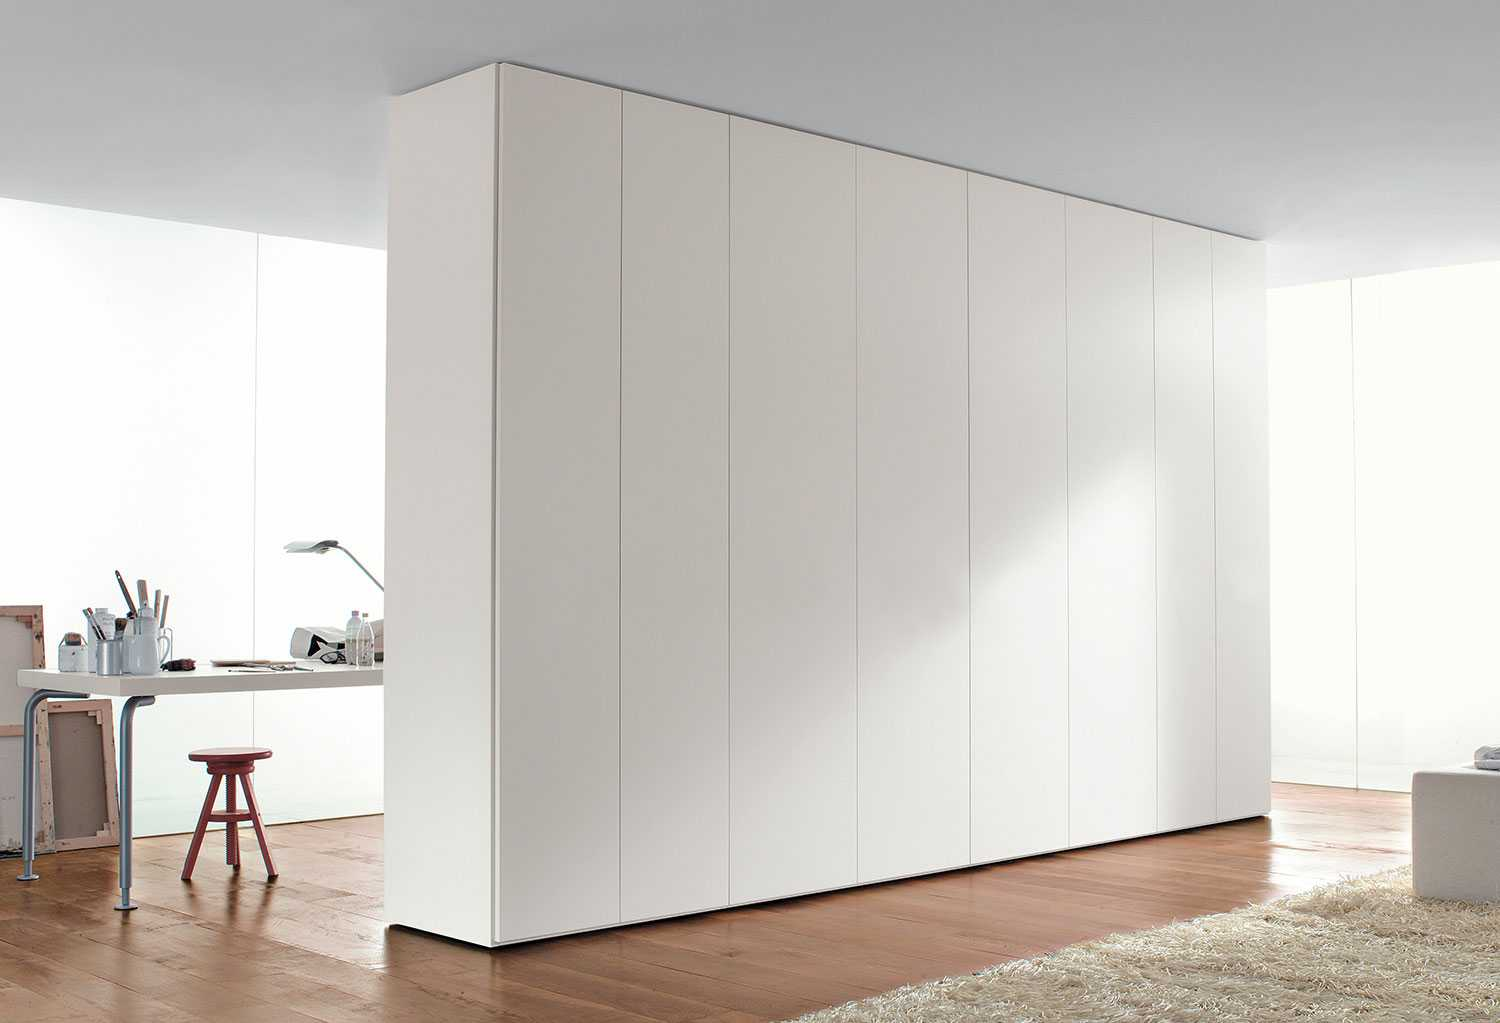 Armadio Altezza 150 Cm.Armadio Battente Componibile Start Lineare Clever